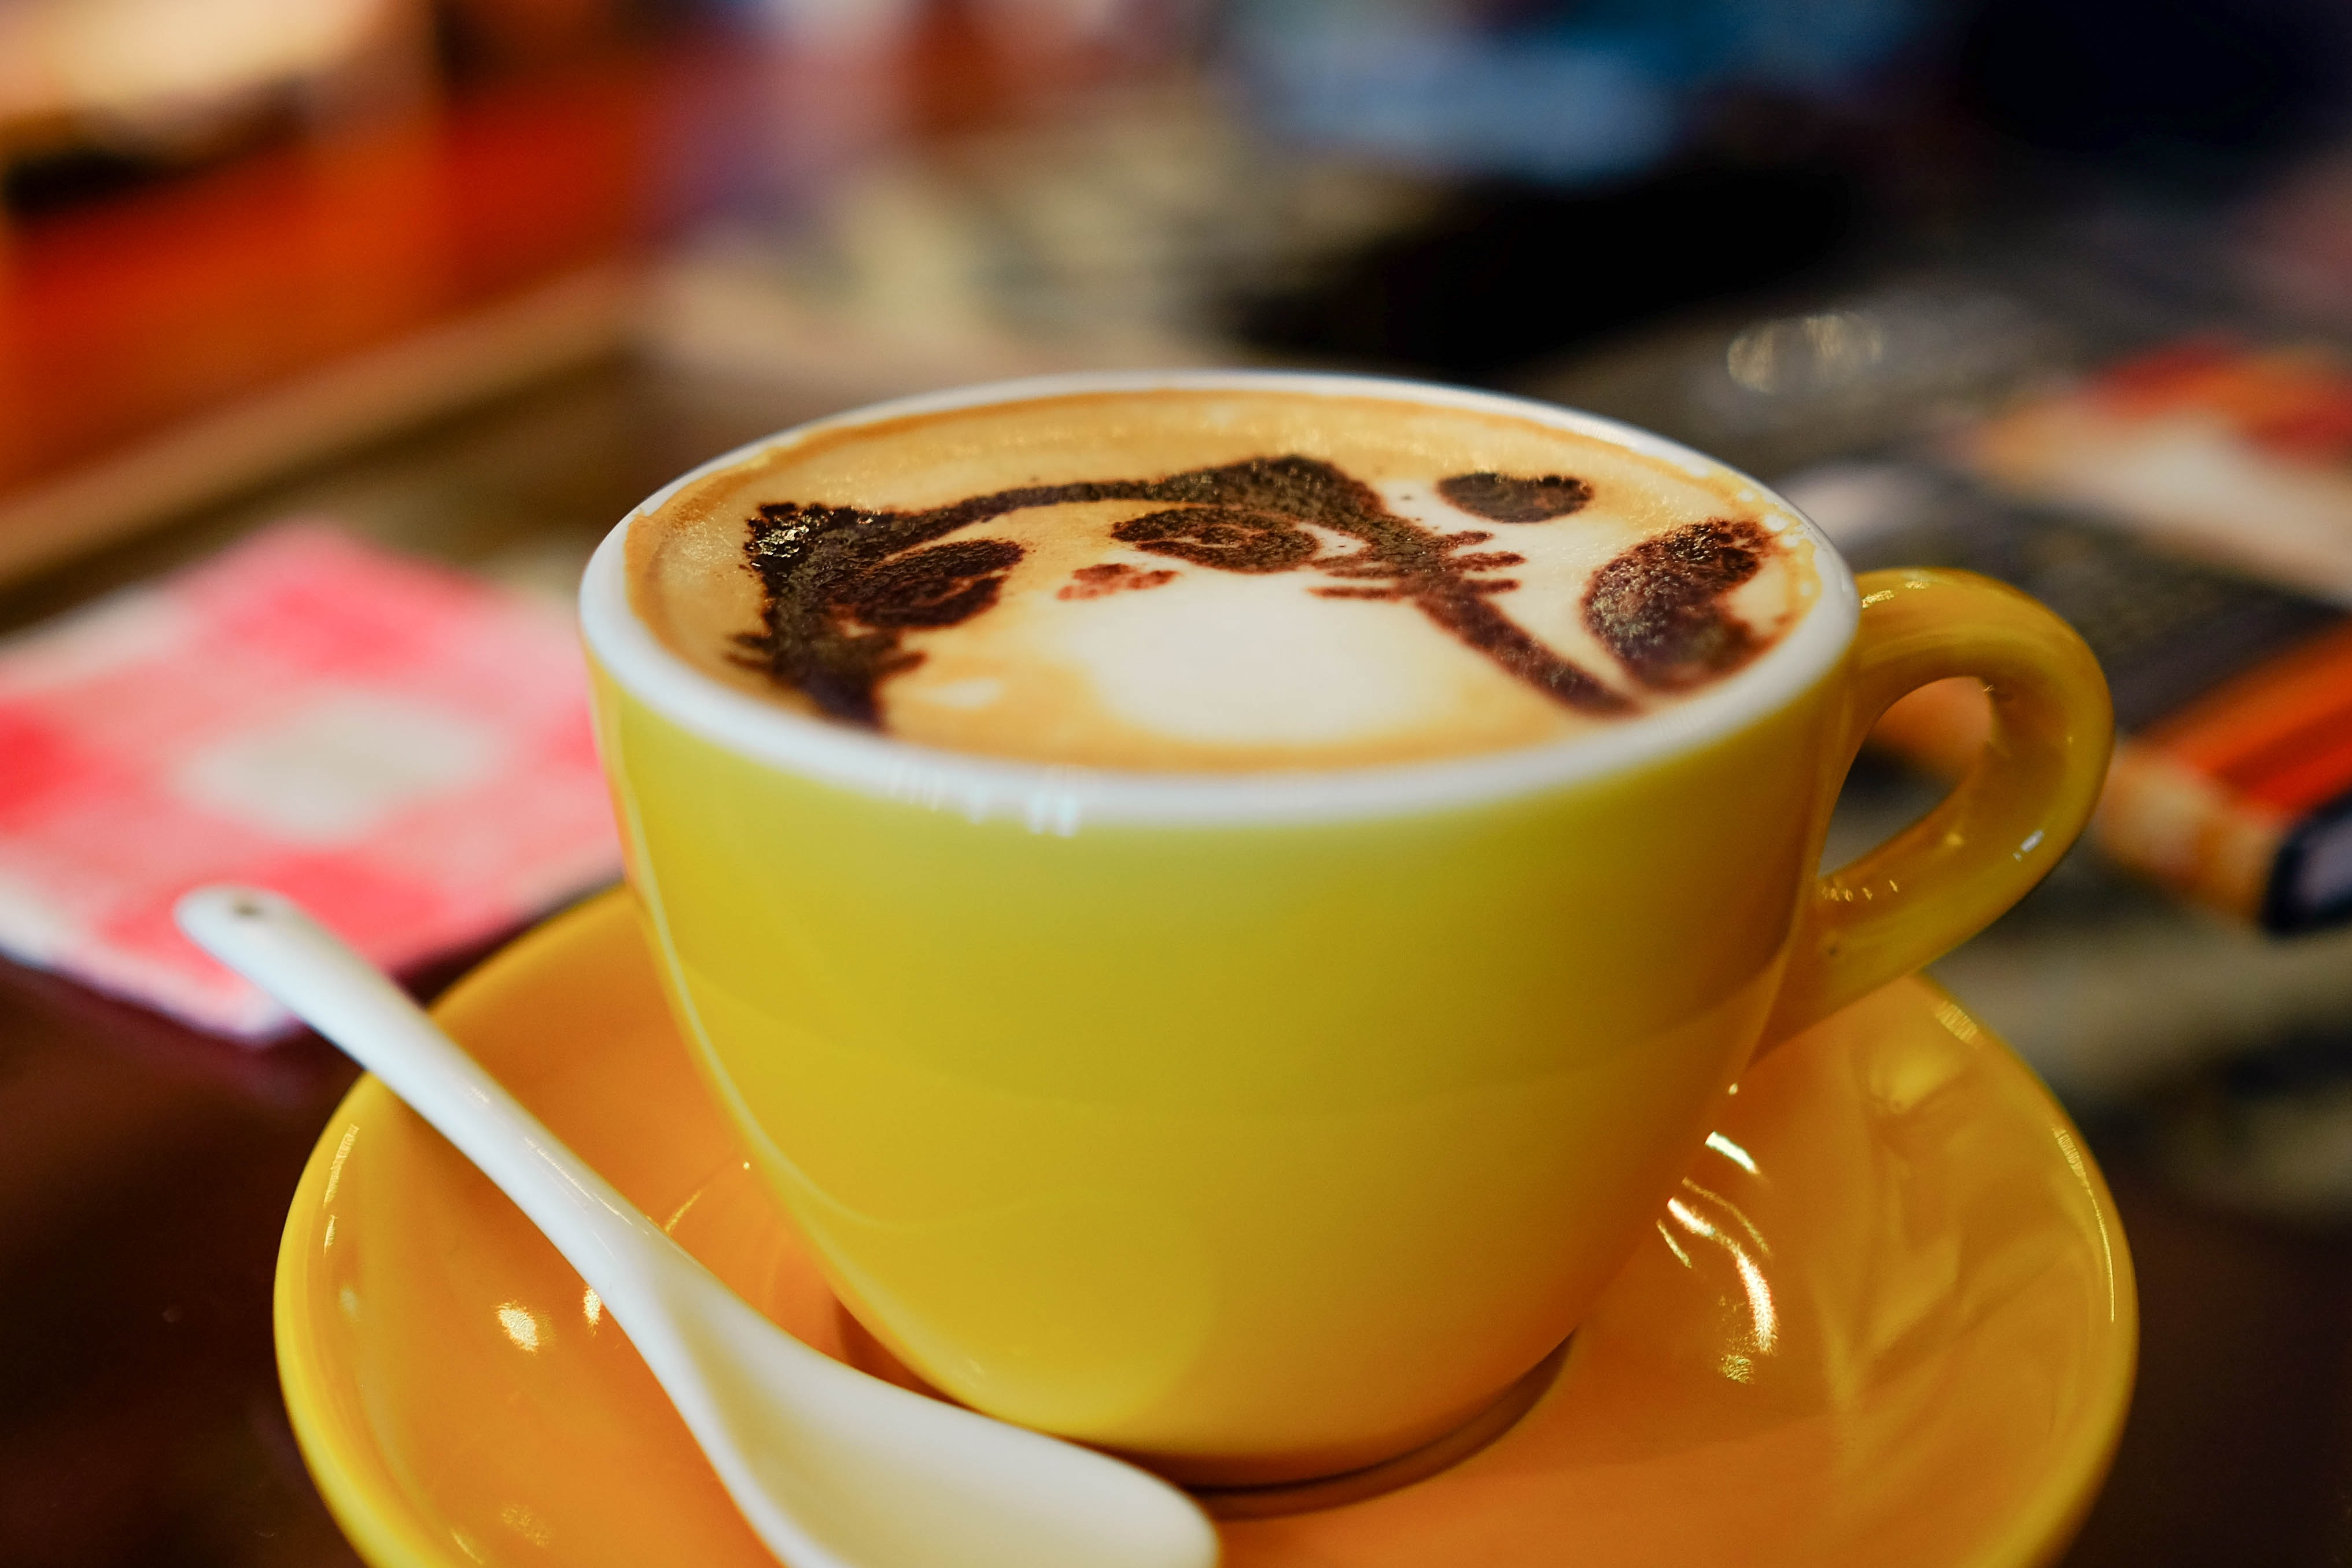 Small cappuccino in a yellow mug on a yellow saucer with a spoon and cat-shaped foam art